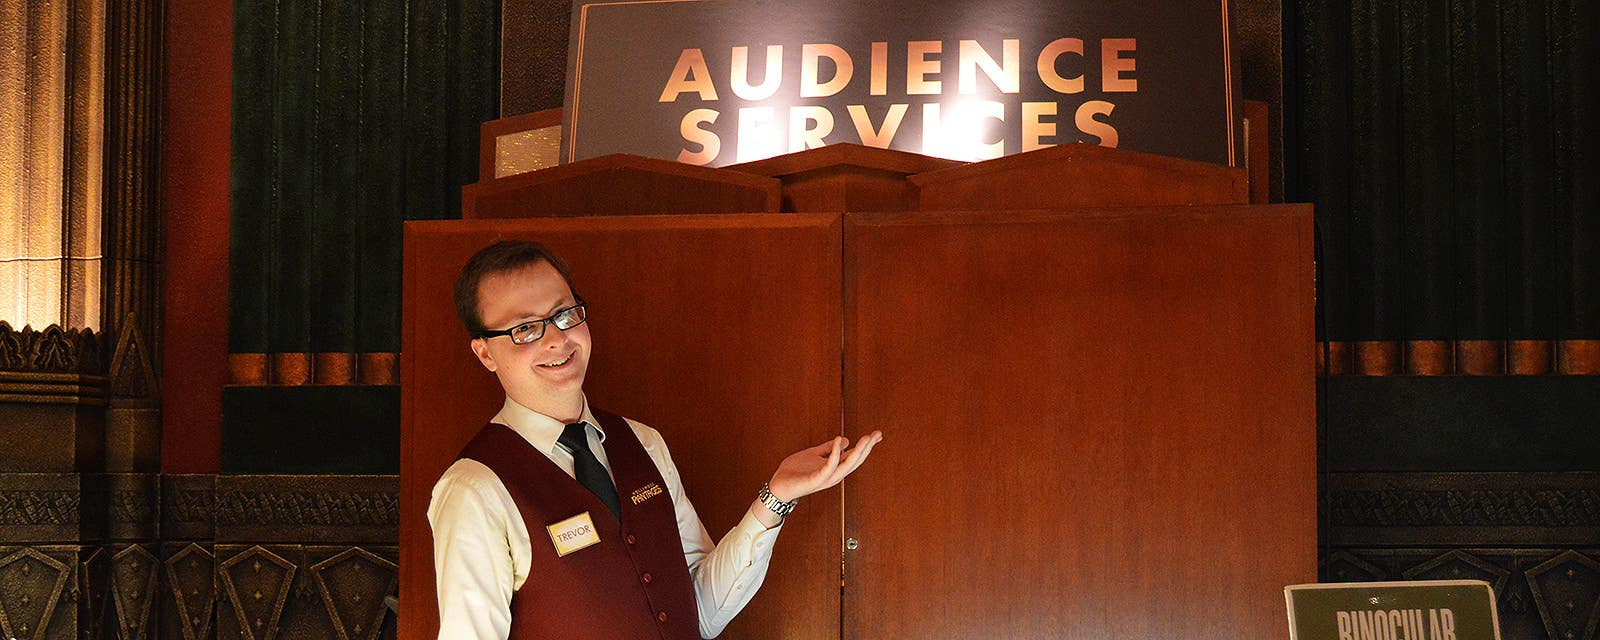 Audience Services at Hollywood Pantages